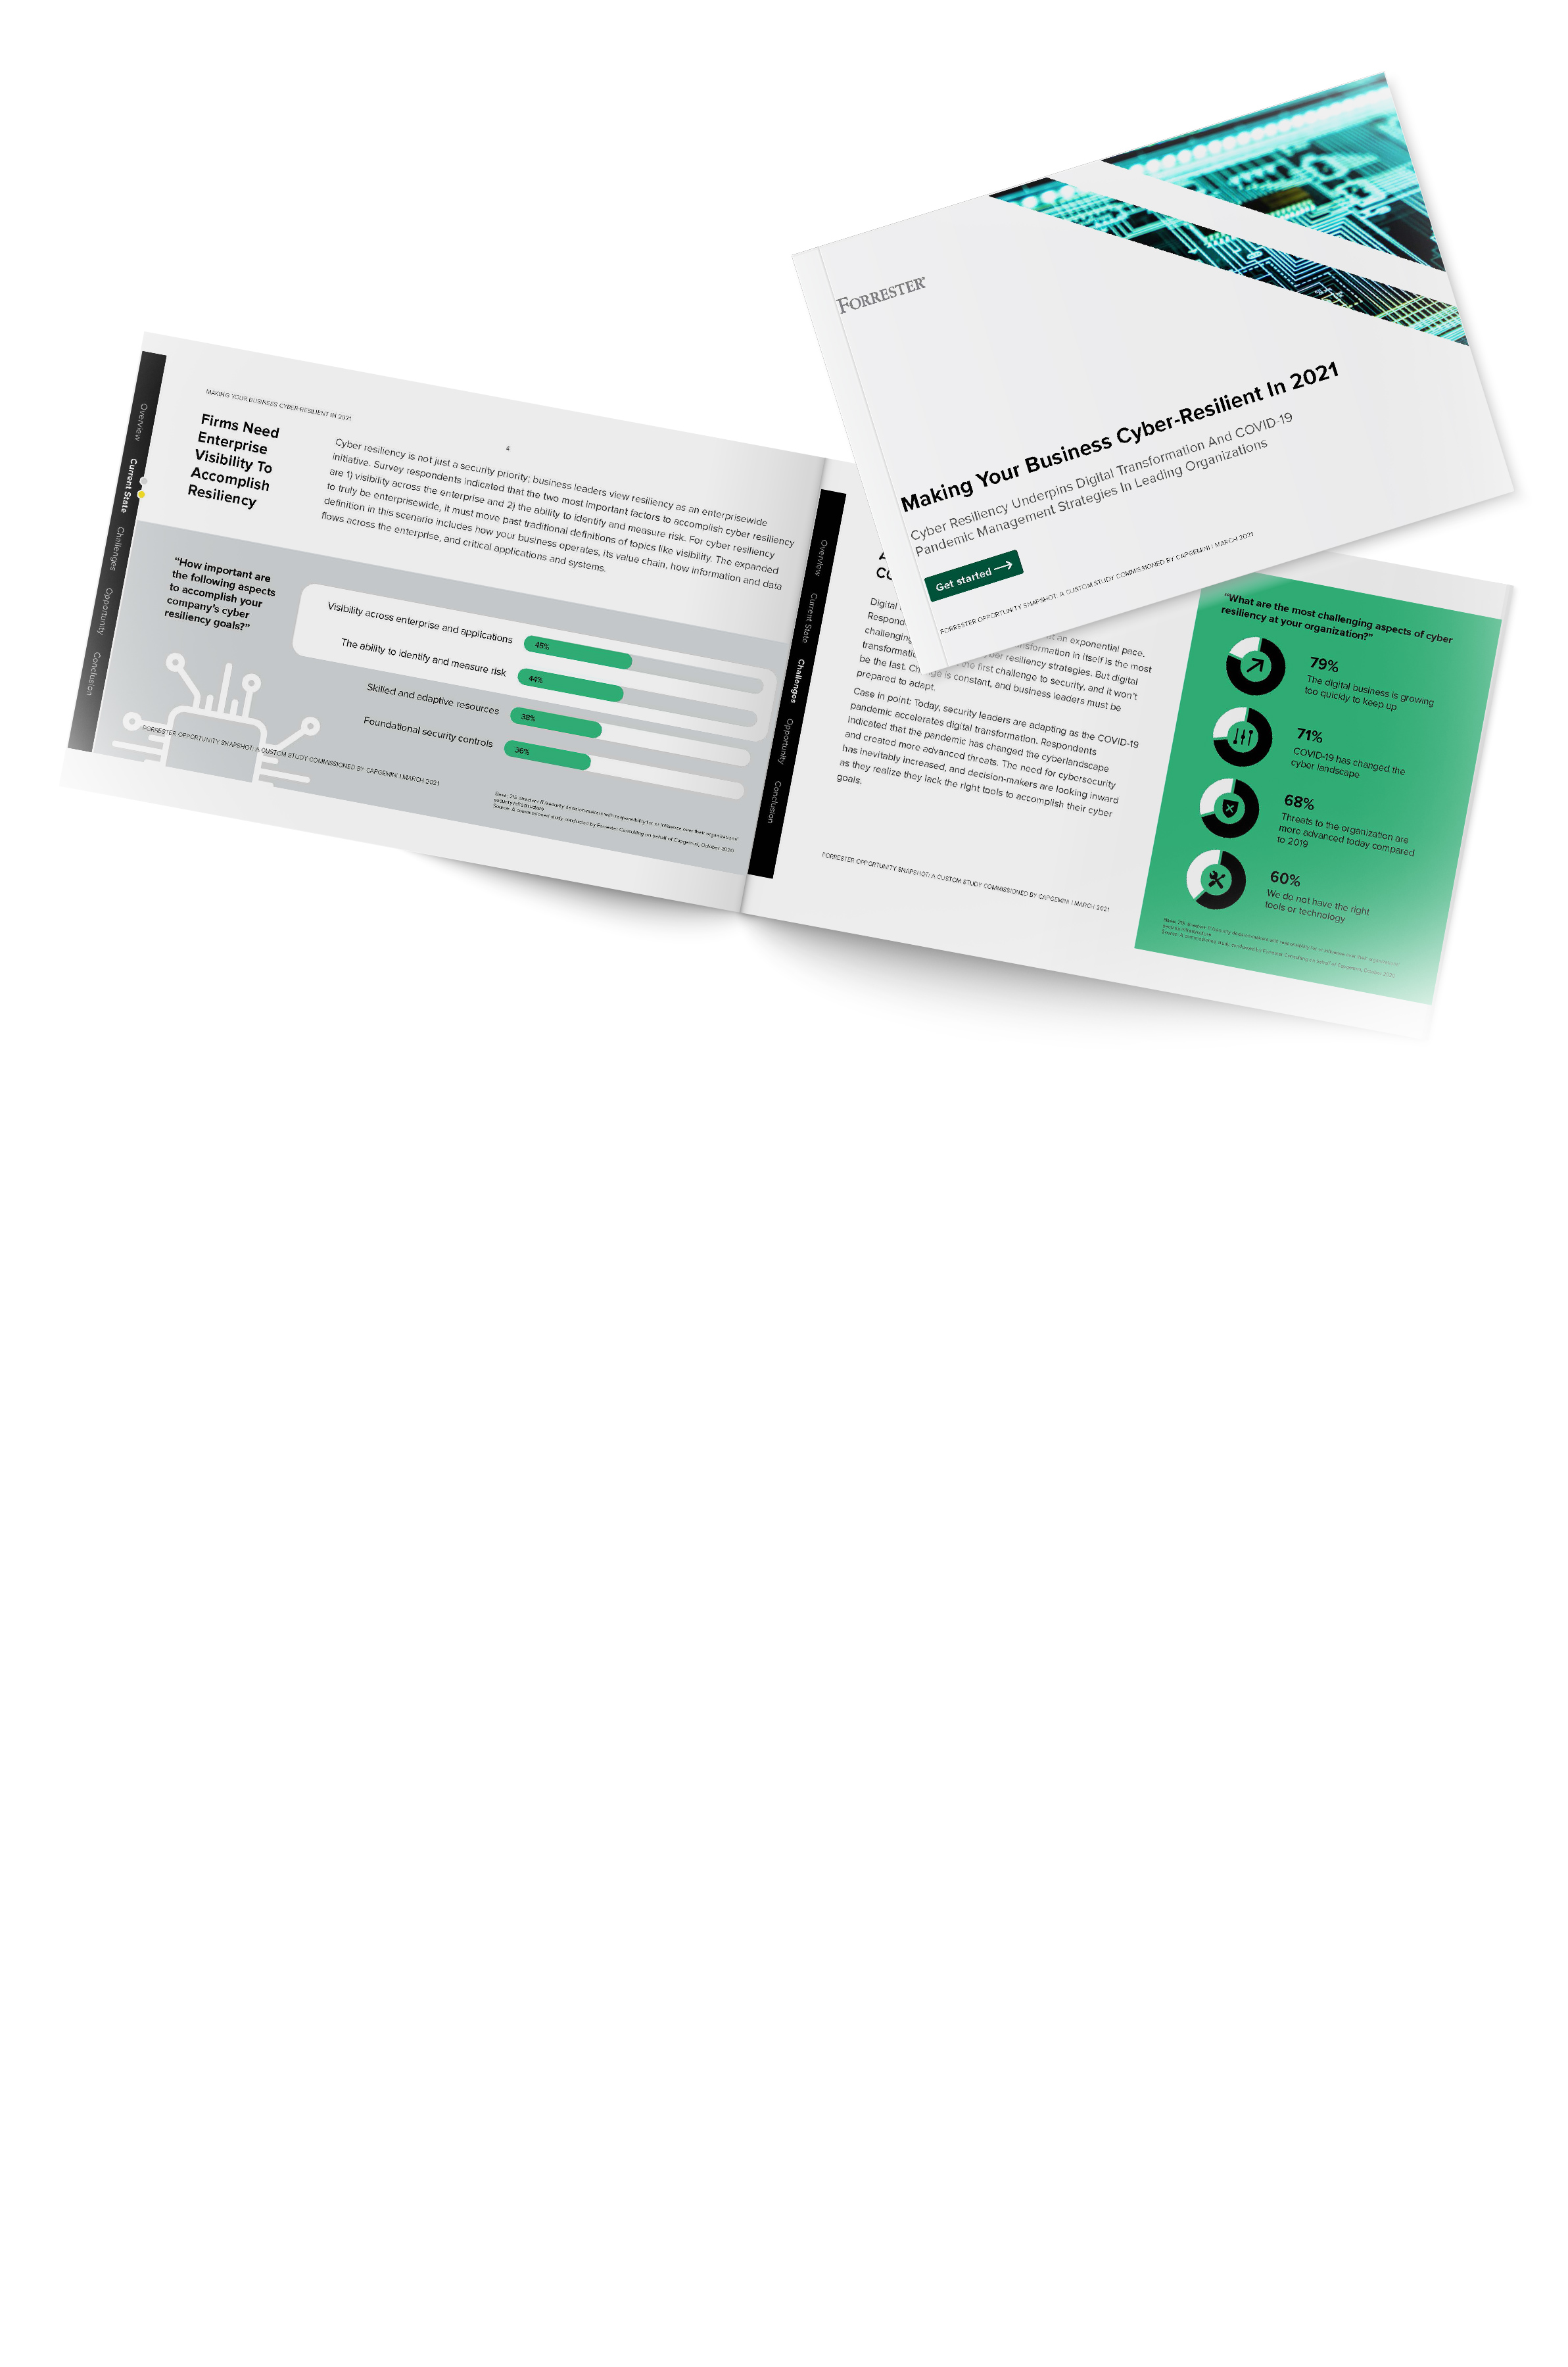 forrester 2020 cybersecurity report preview